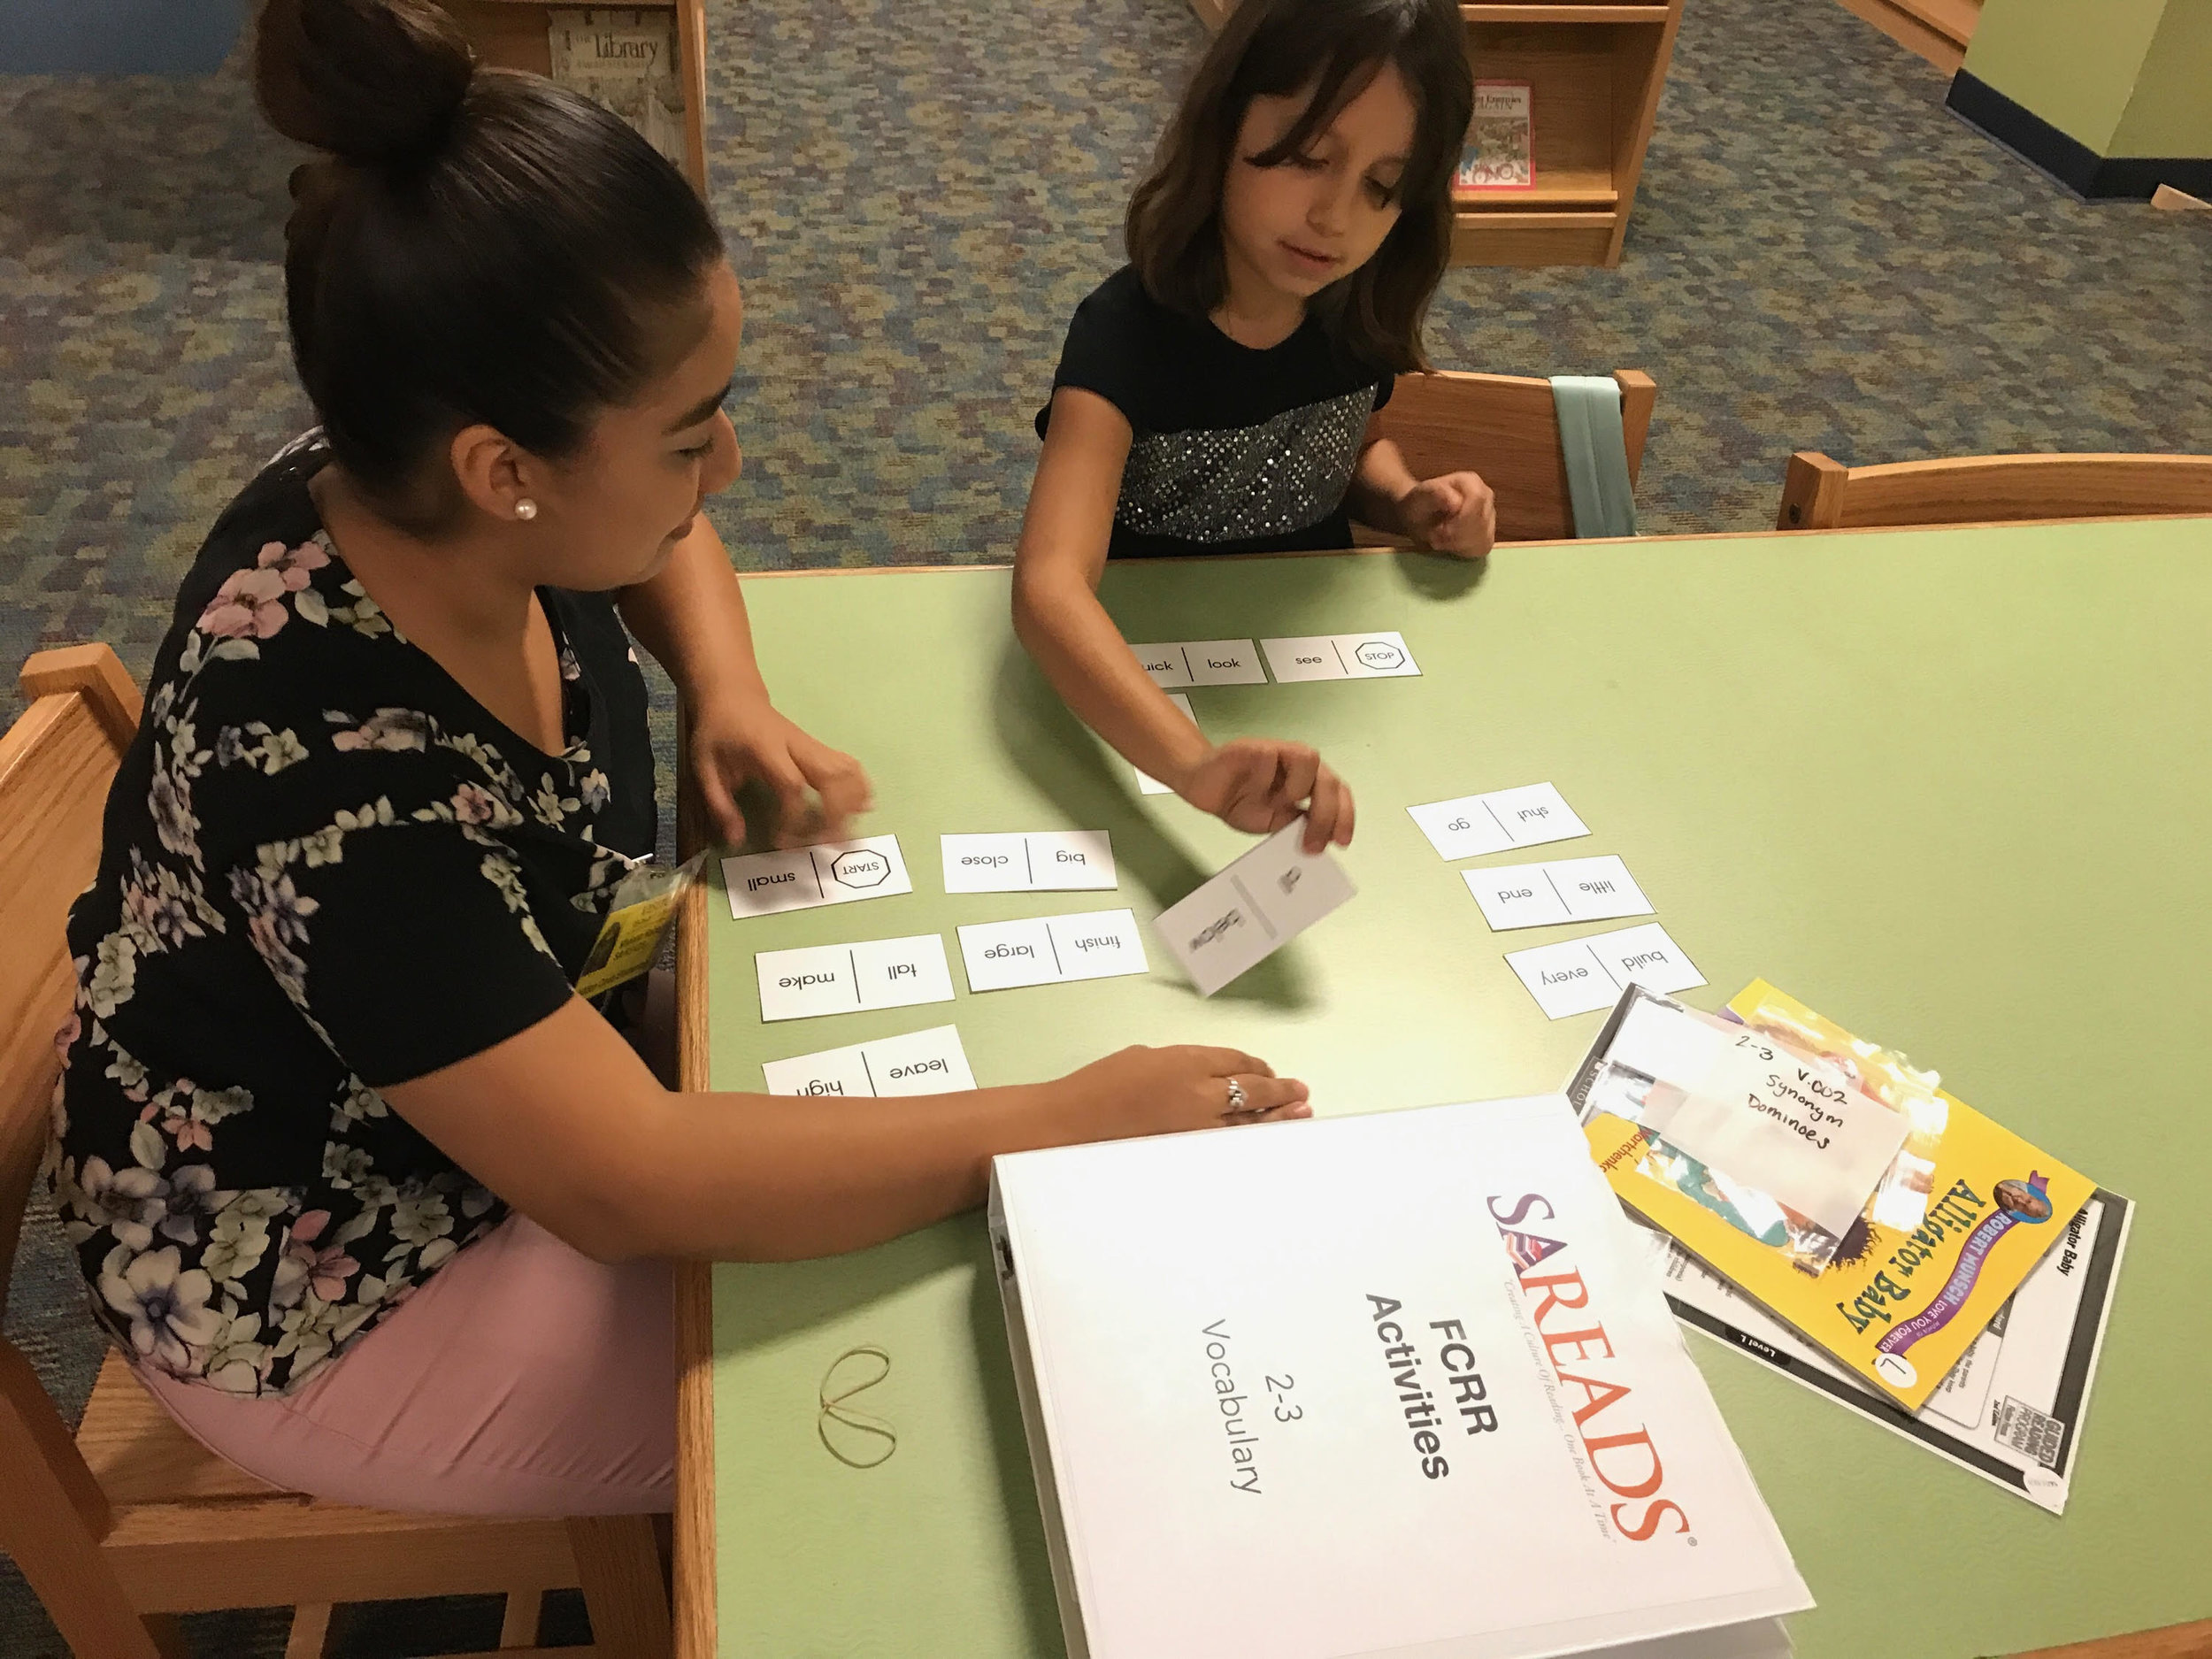 Tutors - In partnership with Texas A&M University San Antonio's College of Education and Human Development, Kindergarten through 4th grade students receive weekly reading tutoring from pre-service teachers enrolled in reading instruction courses.